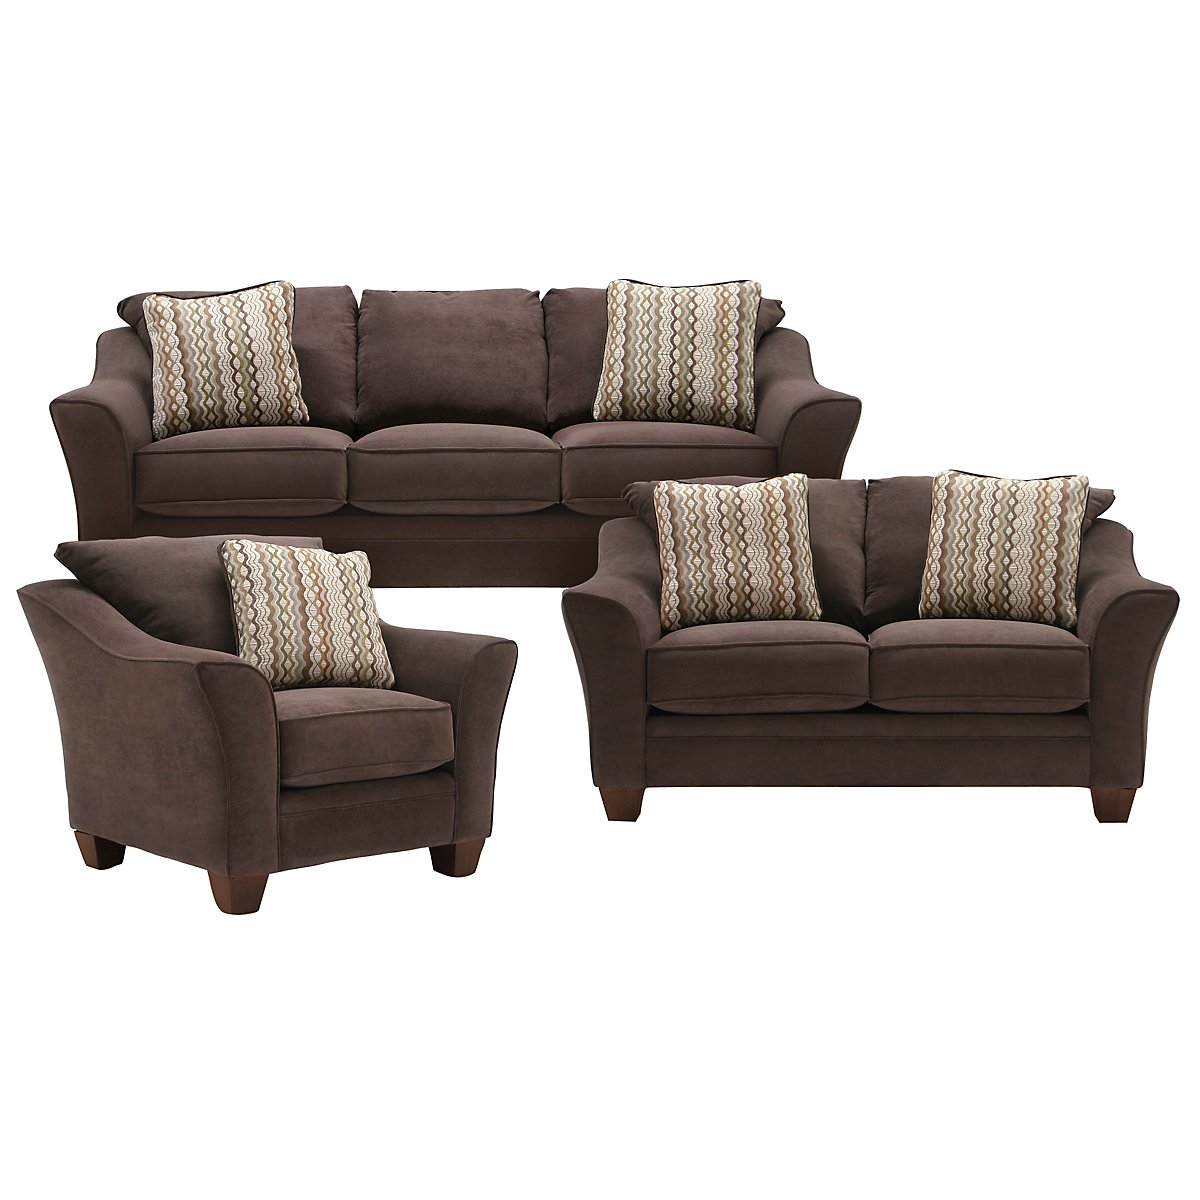 Grant2 Dark Brown Microfiber Living Room